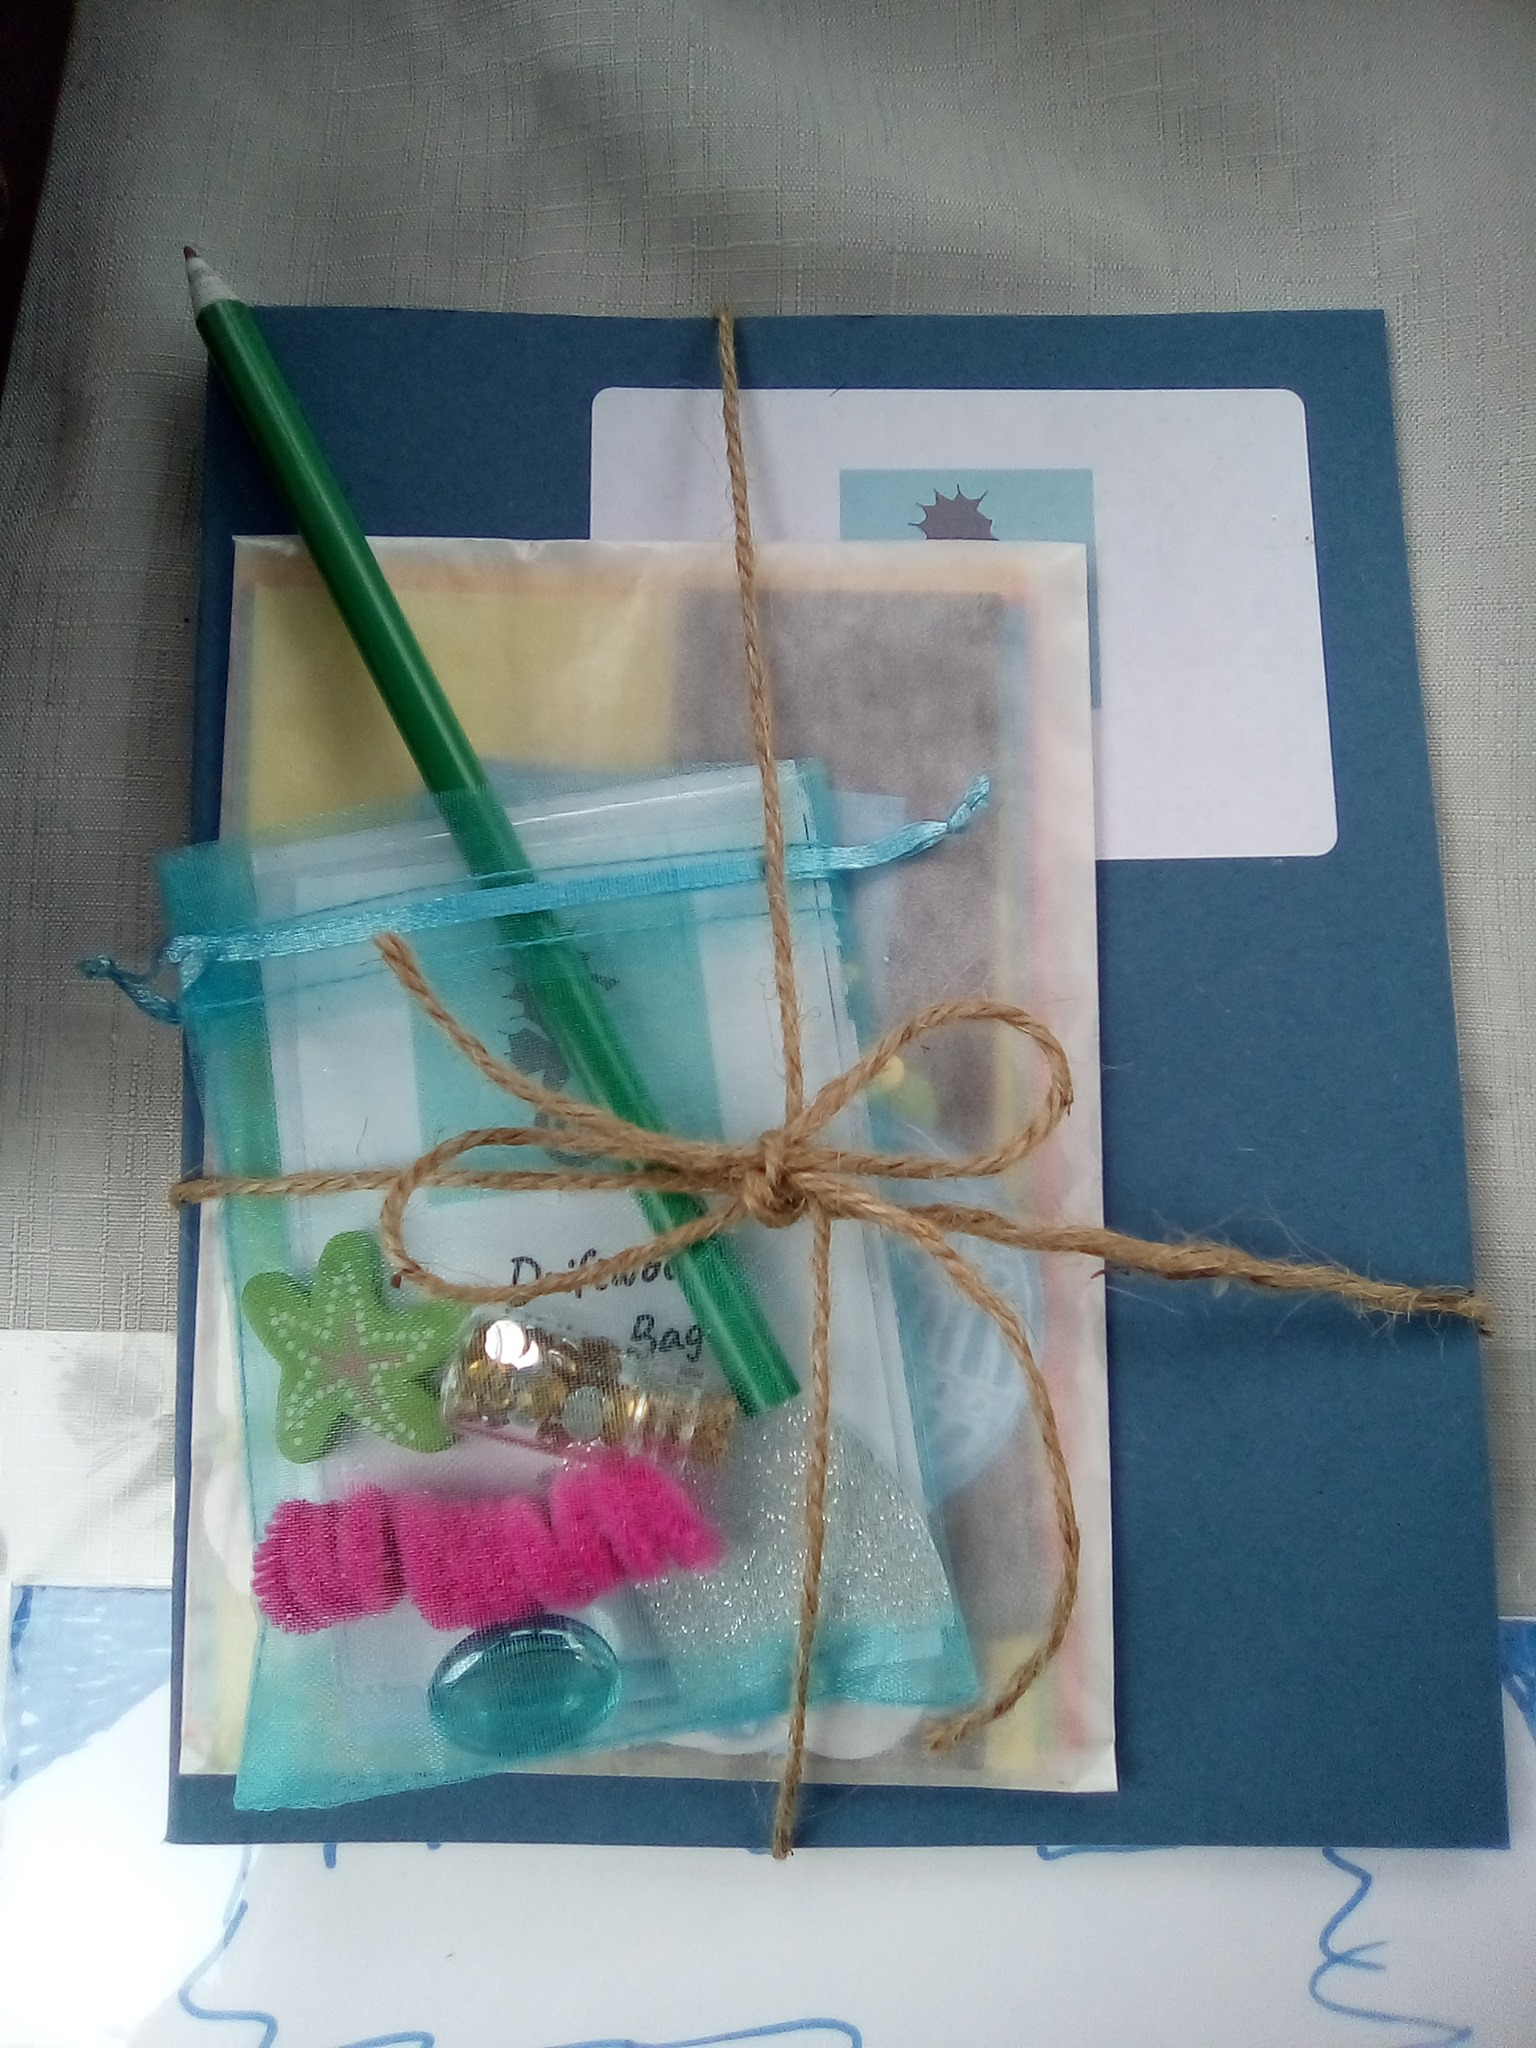 A package tied with string - a bag of interesting objects, a notebook and a pencil.